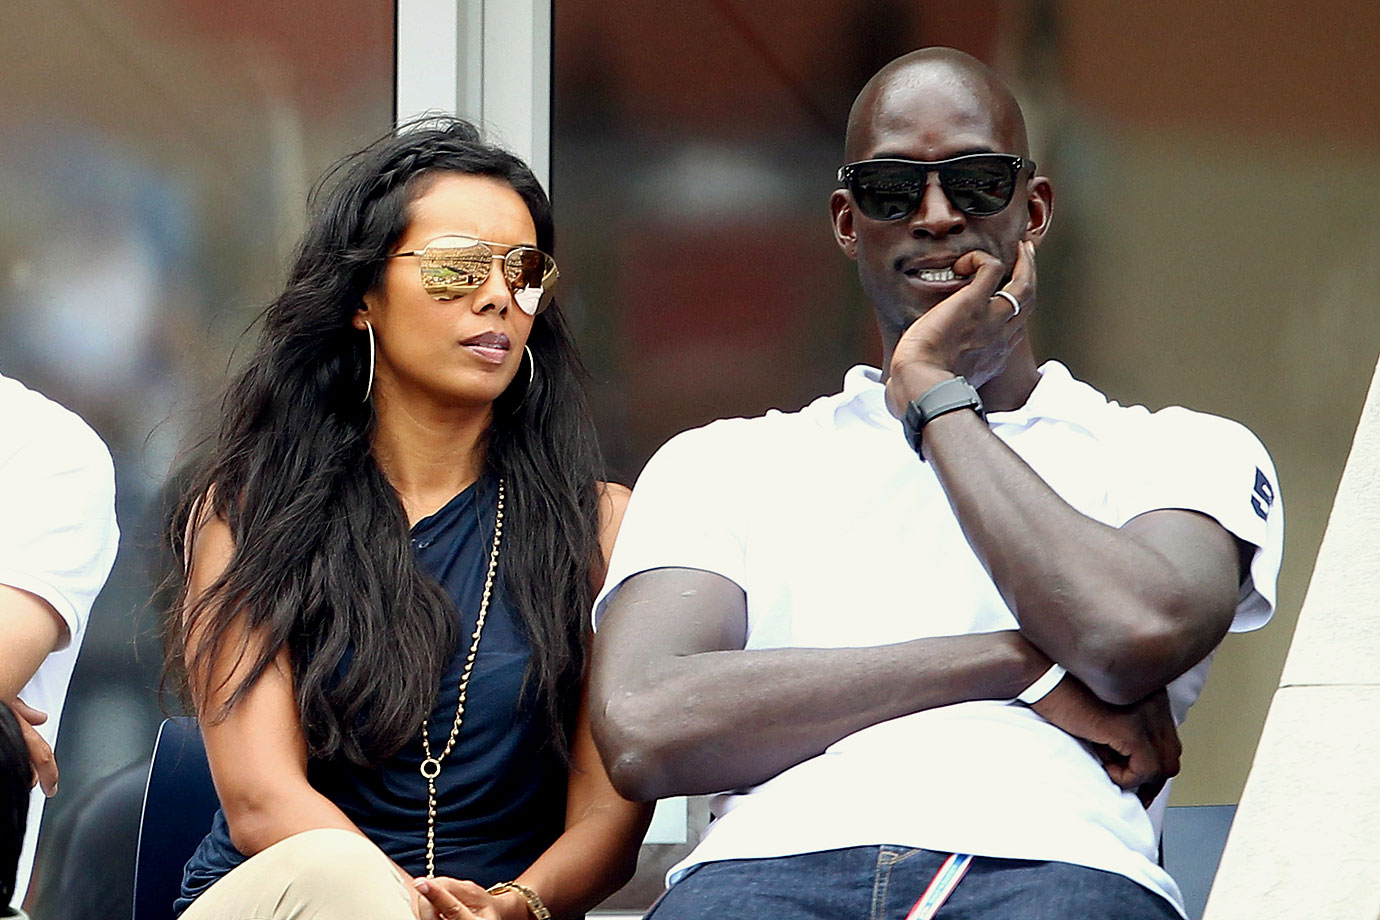 Kevin Garnett and his wife Brandi attend Day 8 of the 2011 U.S. Open.